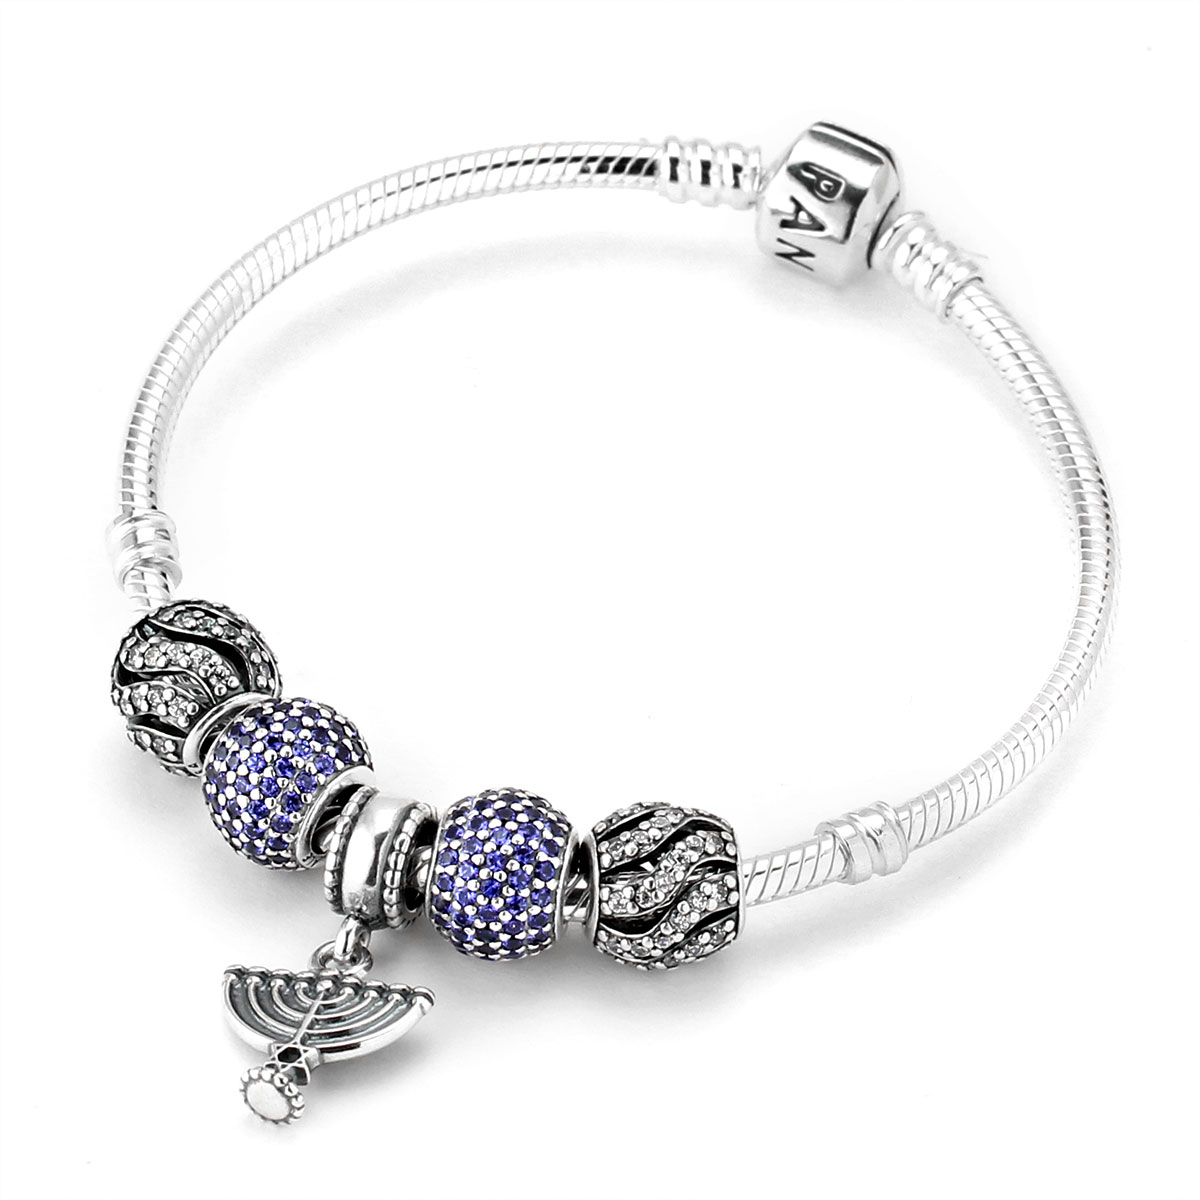 Shop authentic PANDORA jewelry, bracelets, charms, earrings & necklaces. Free shipping & top-rated customer service from PANDORA Mall of America.